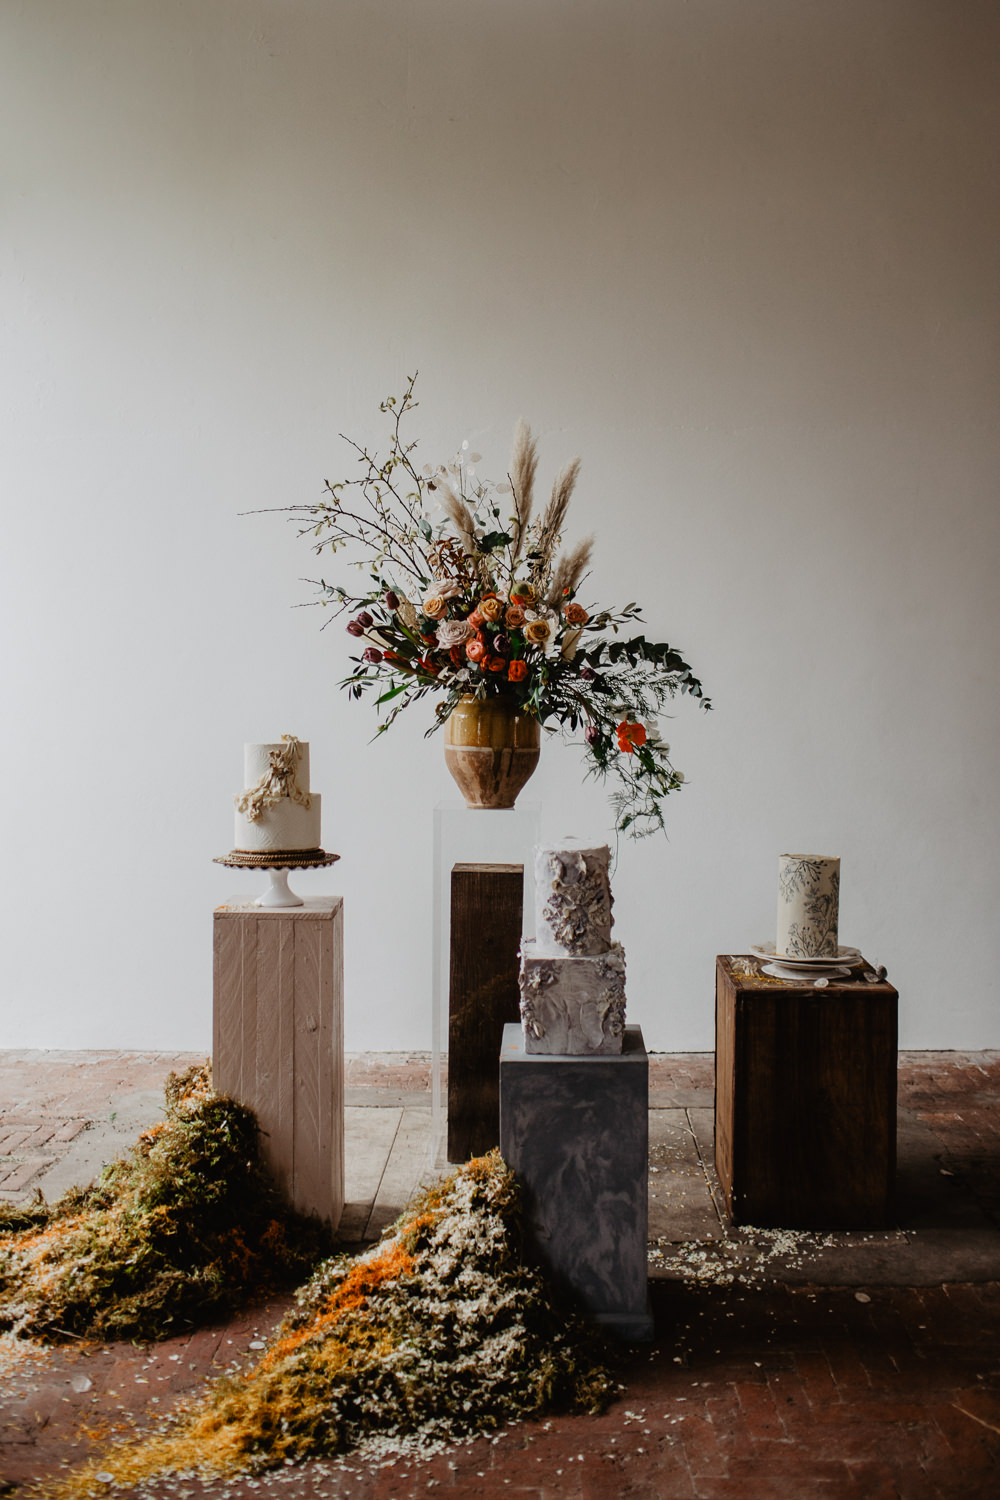 Cake Table Dessert Cakes Dried Flowers Pottery Fabric Earthy Natural Plinths Moss Confetti Installation Flowers Vase Elopement Wedding Ideas Oilvejoy Photography